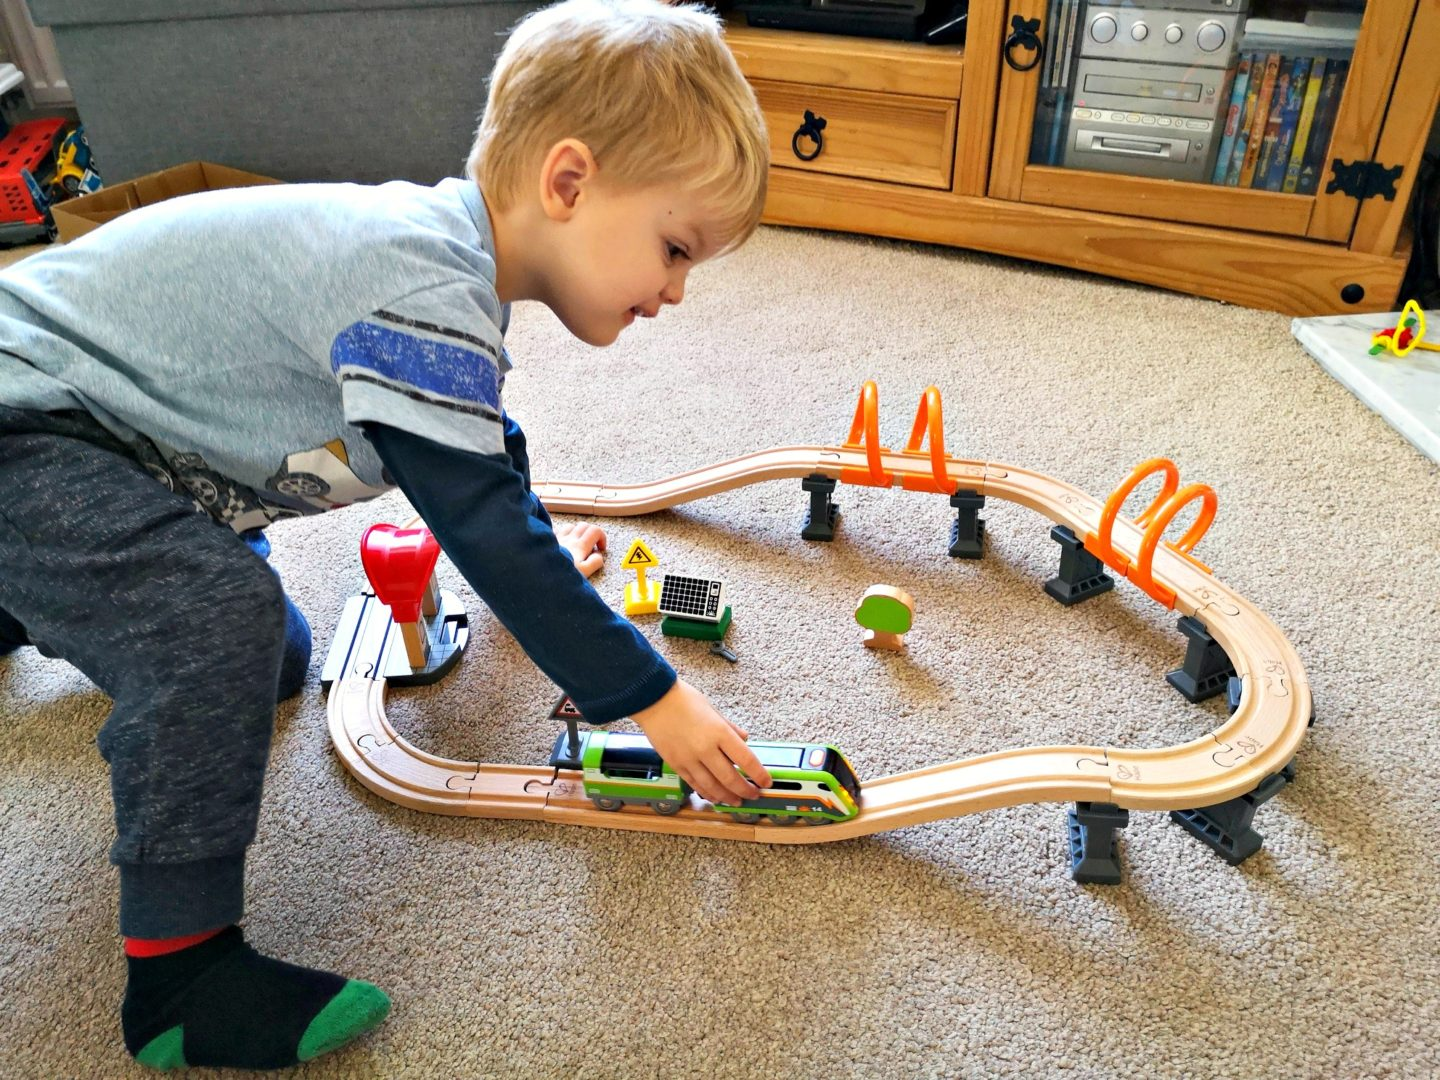 Playing with a train set